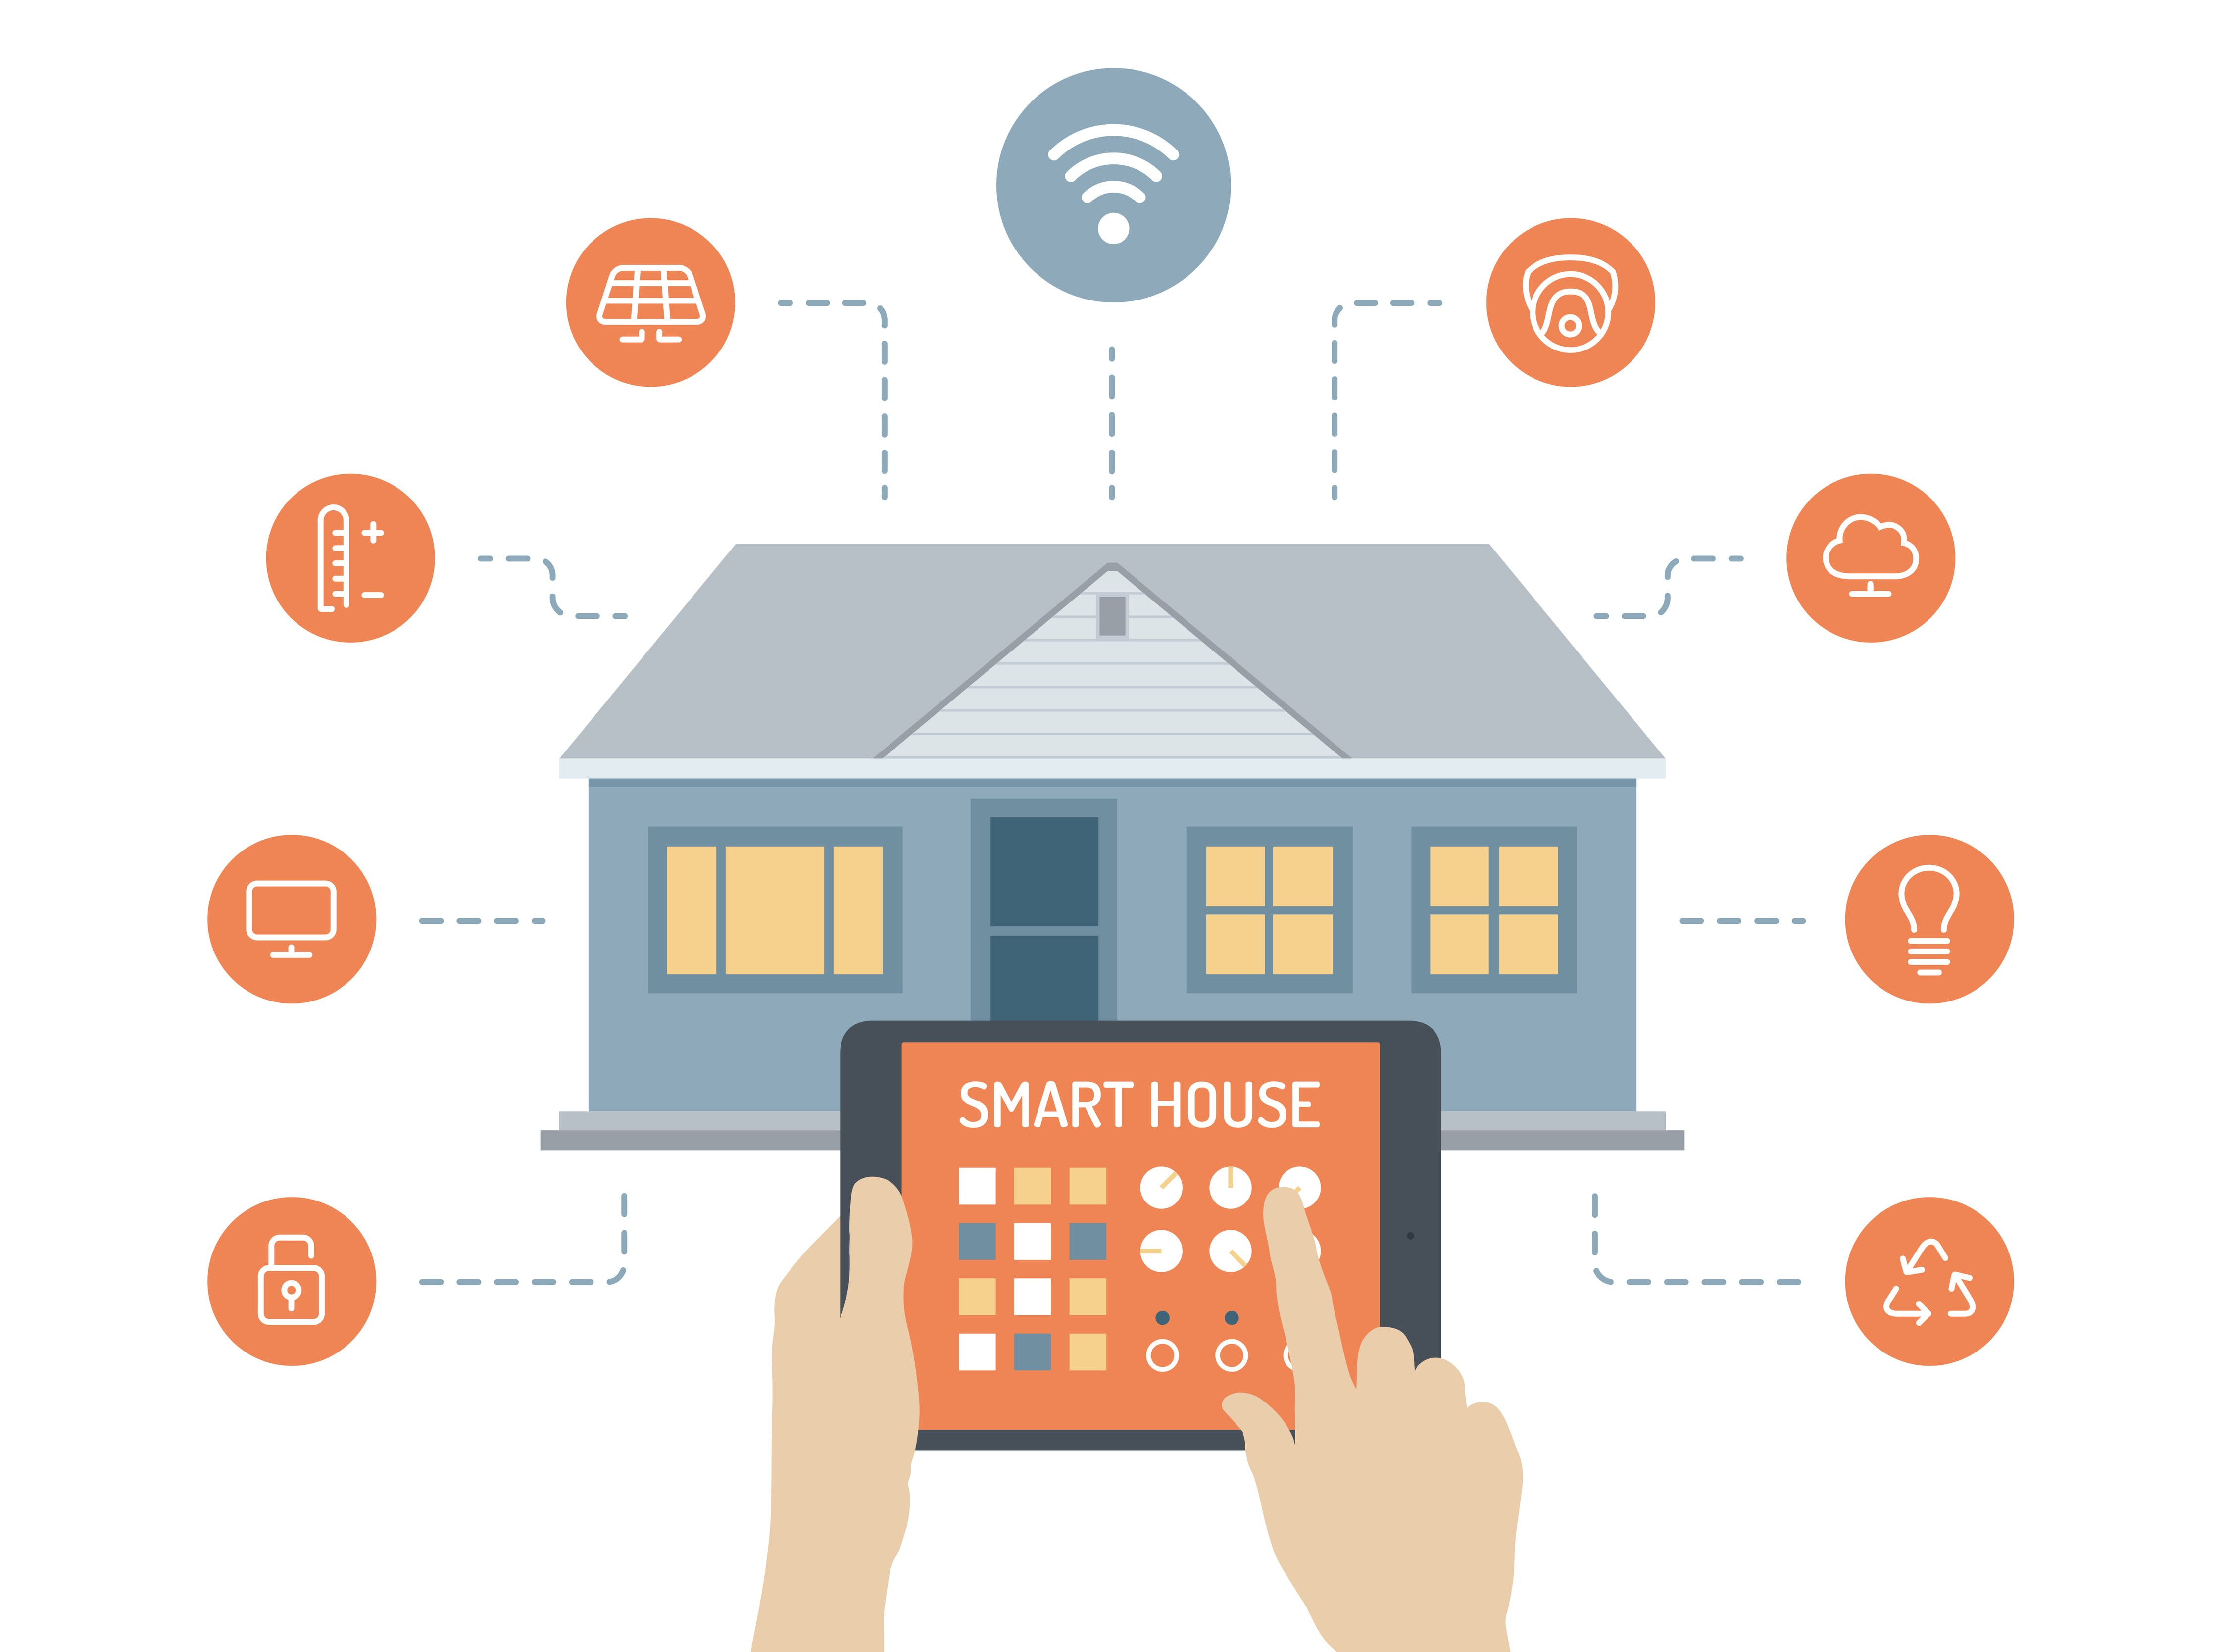 Moving from Homes to Smart Homes